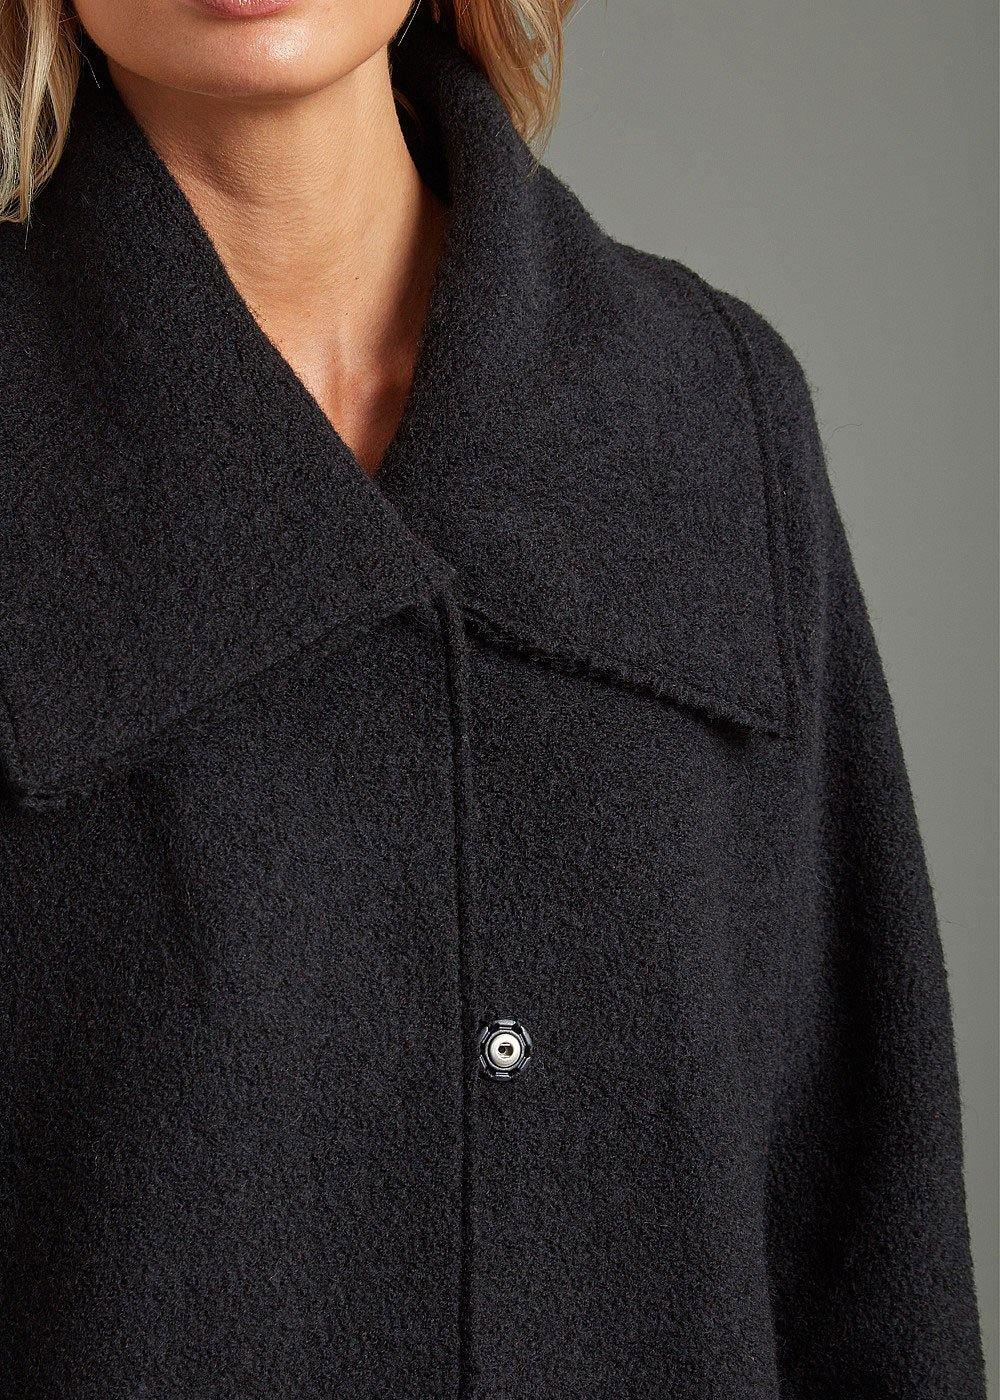 Adini Falmouth Knit Coat - Black